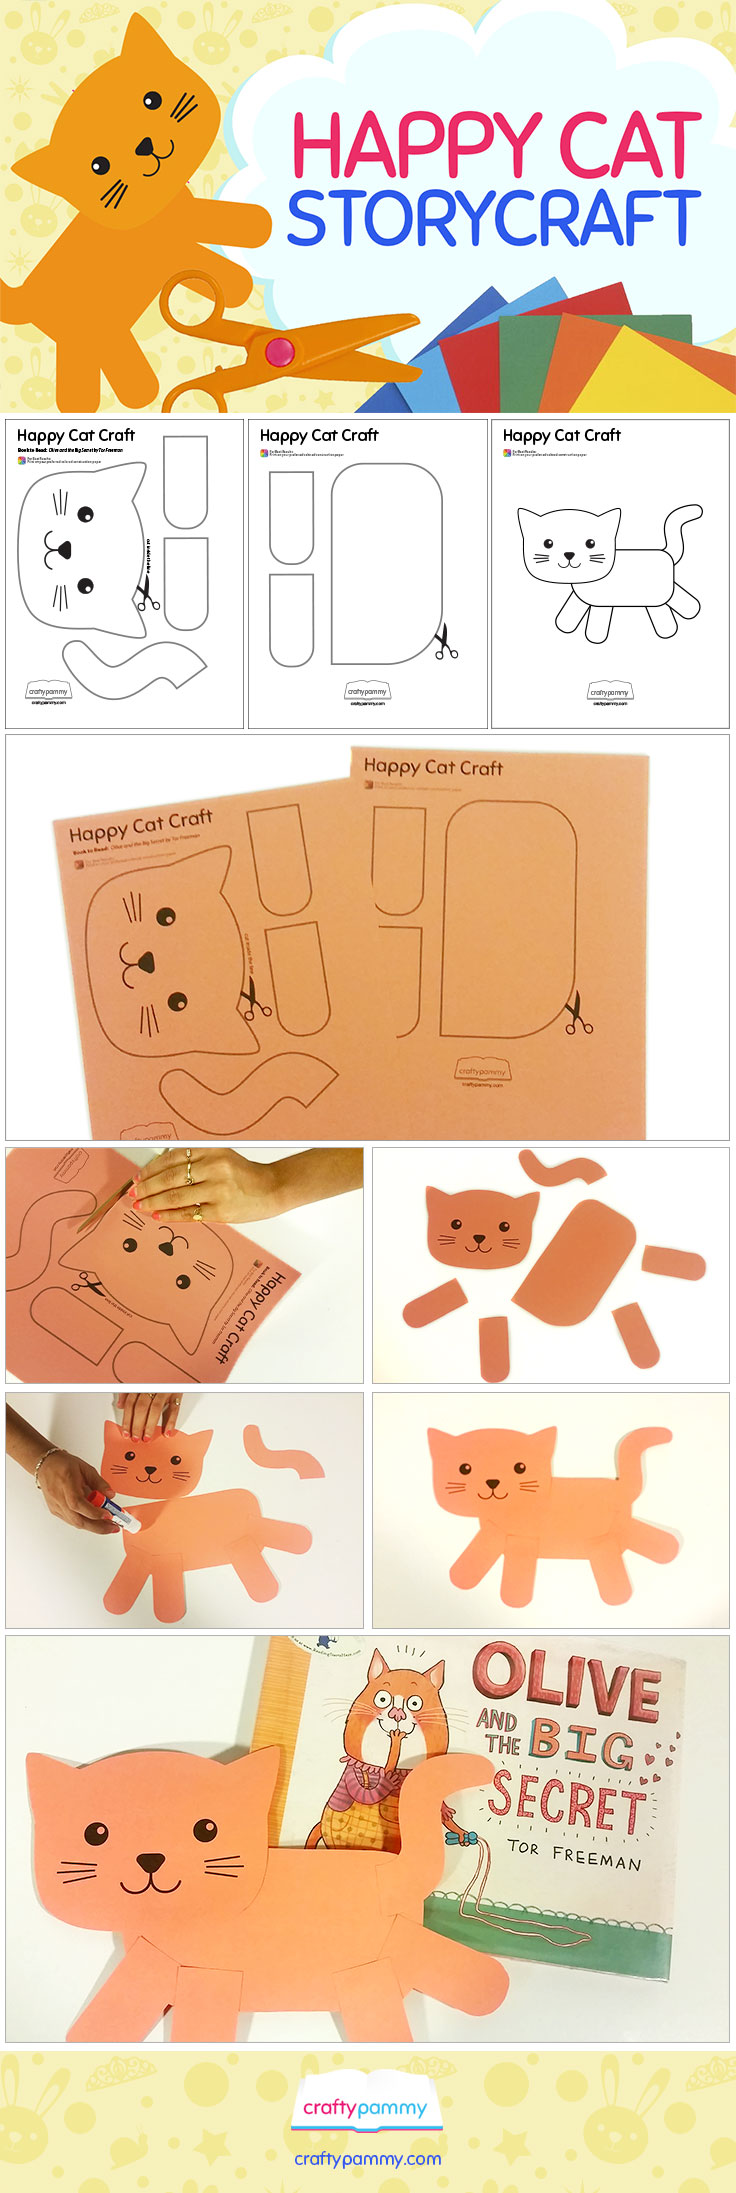 Create a Happy Cat Craft